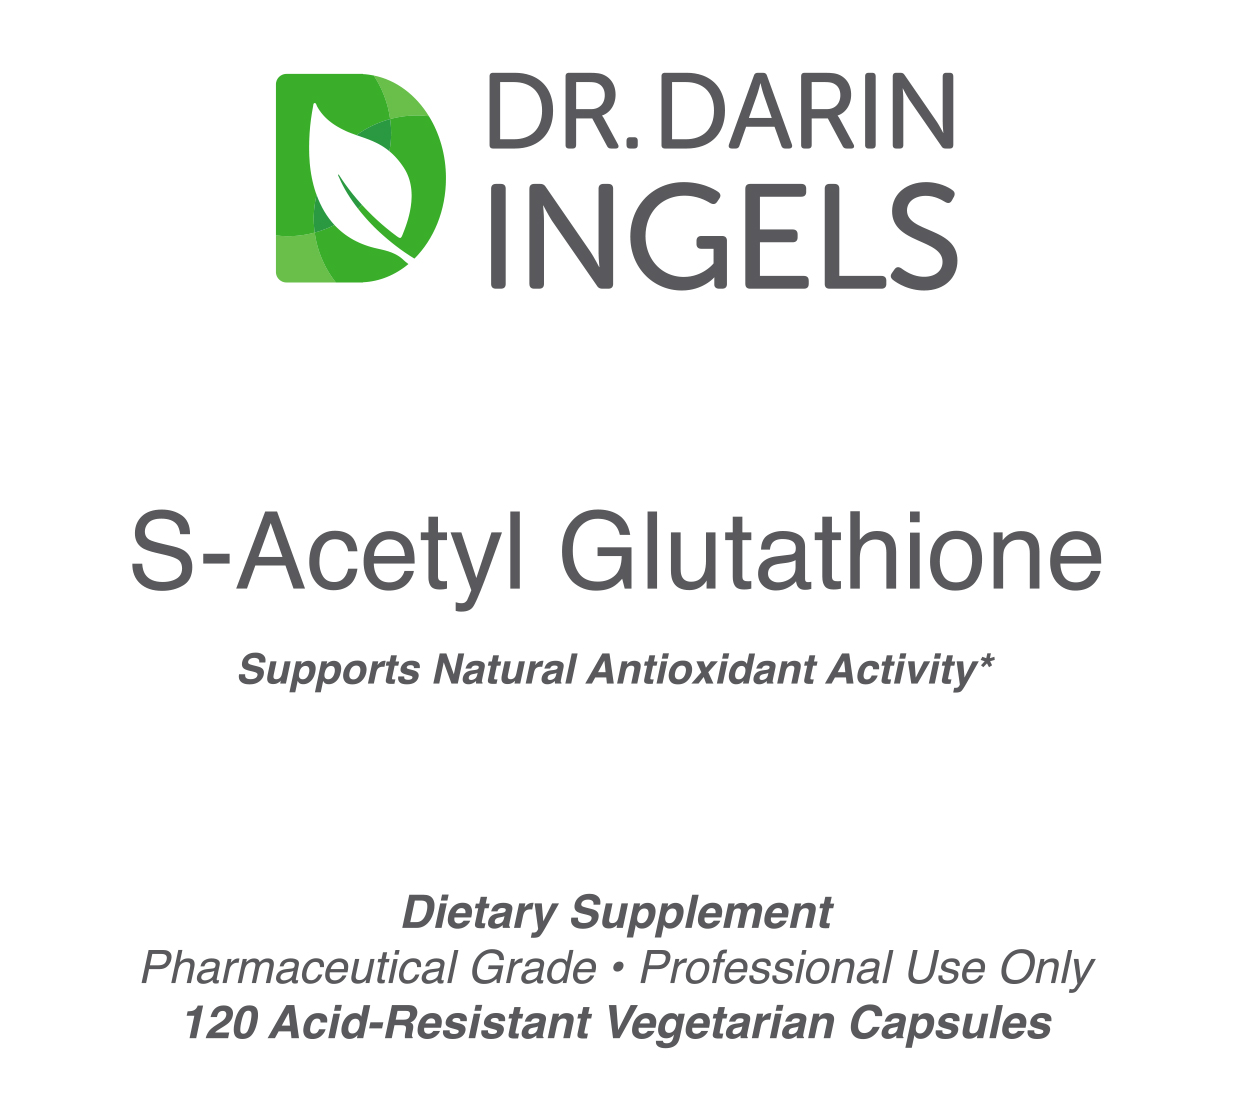 S-Acetyl Glutathione front label